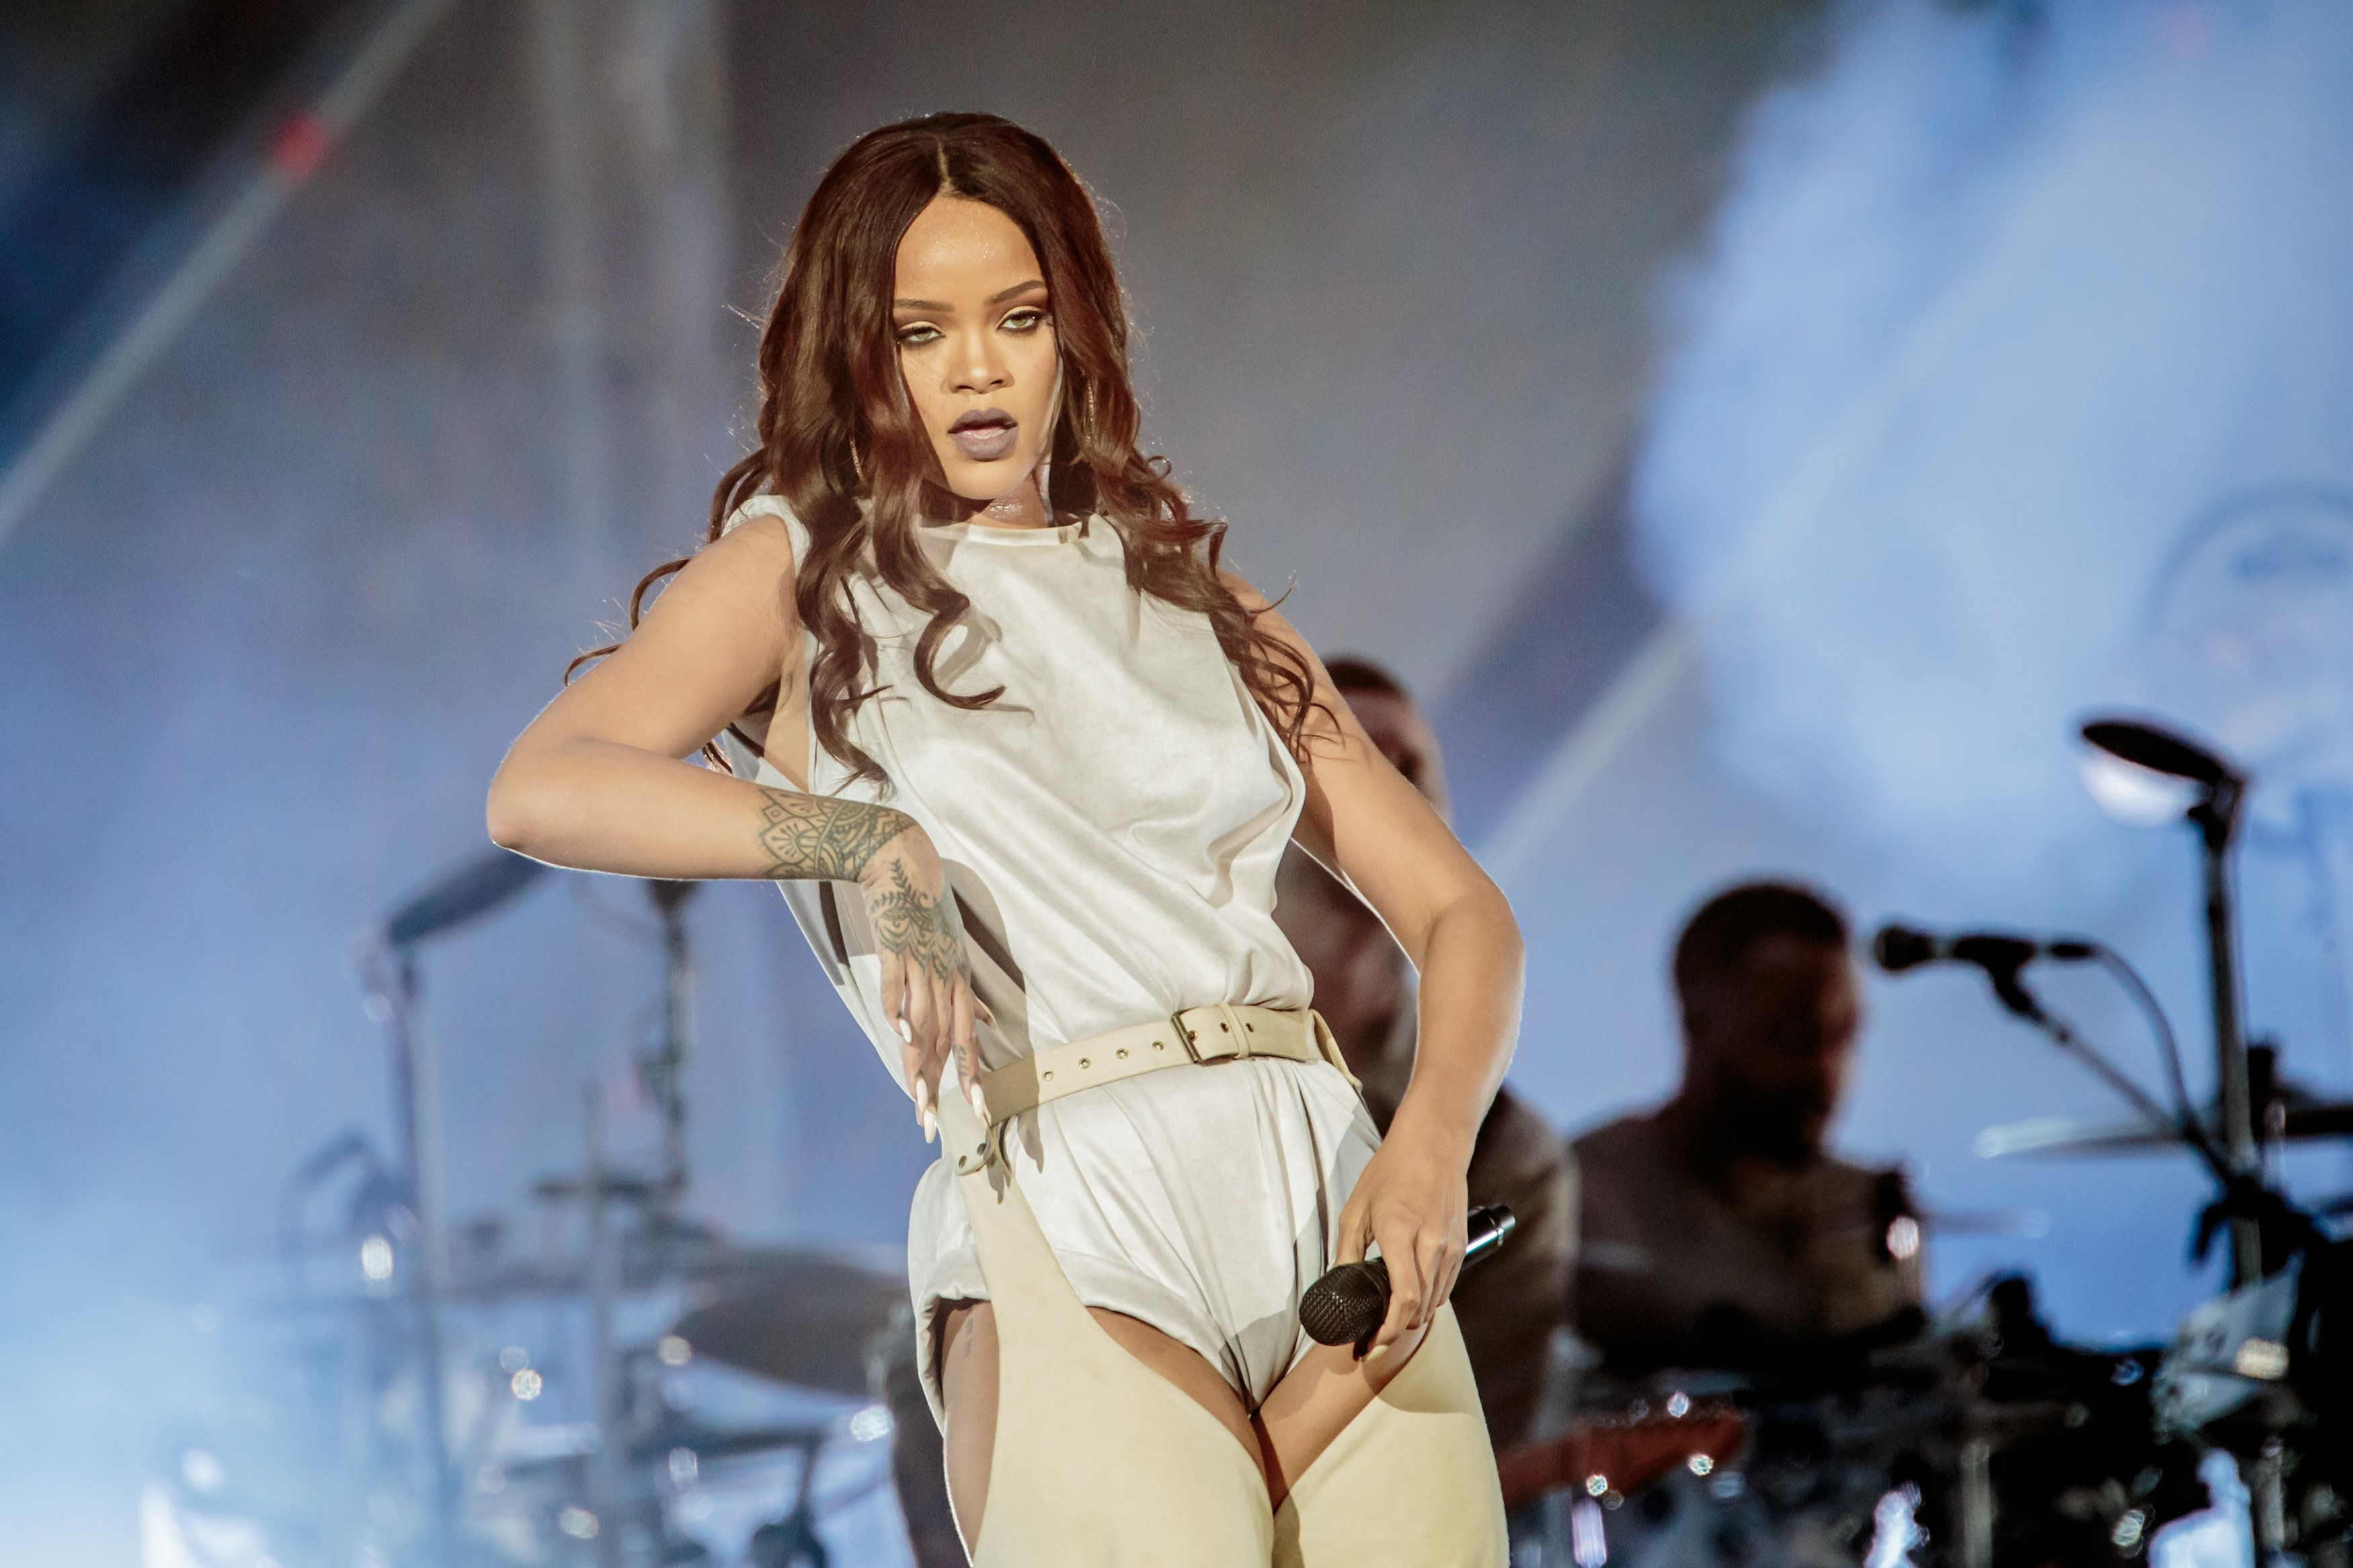 Rihanna performs in Milan, Italy, on July 13.